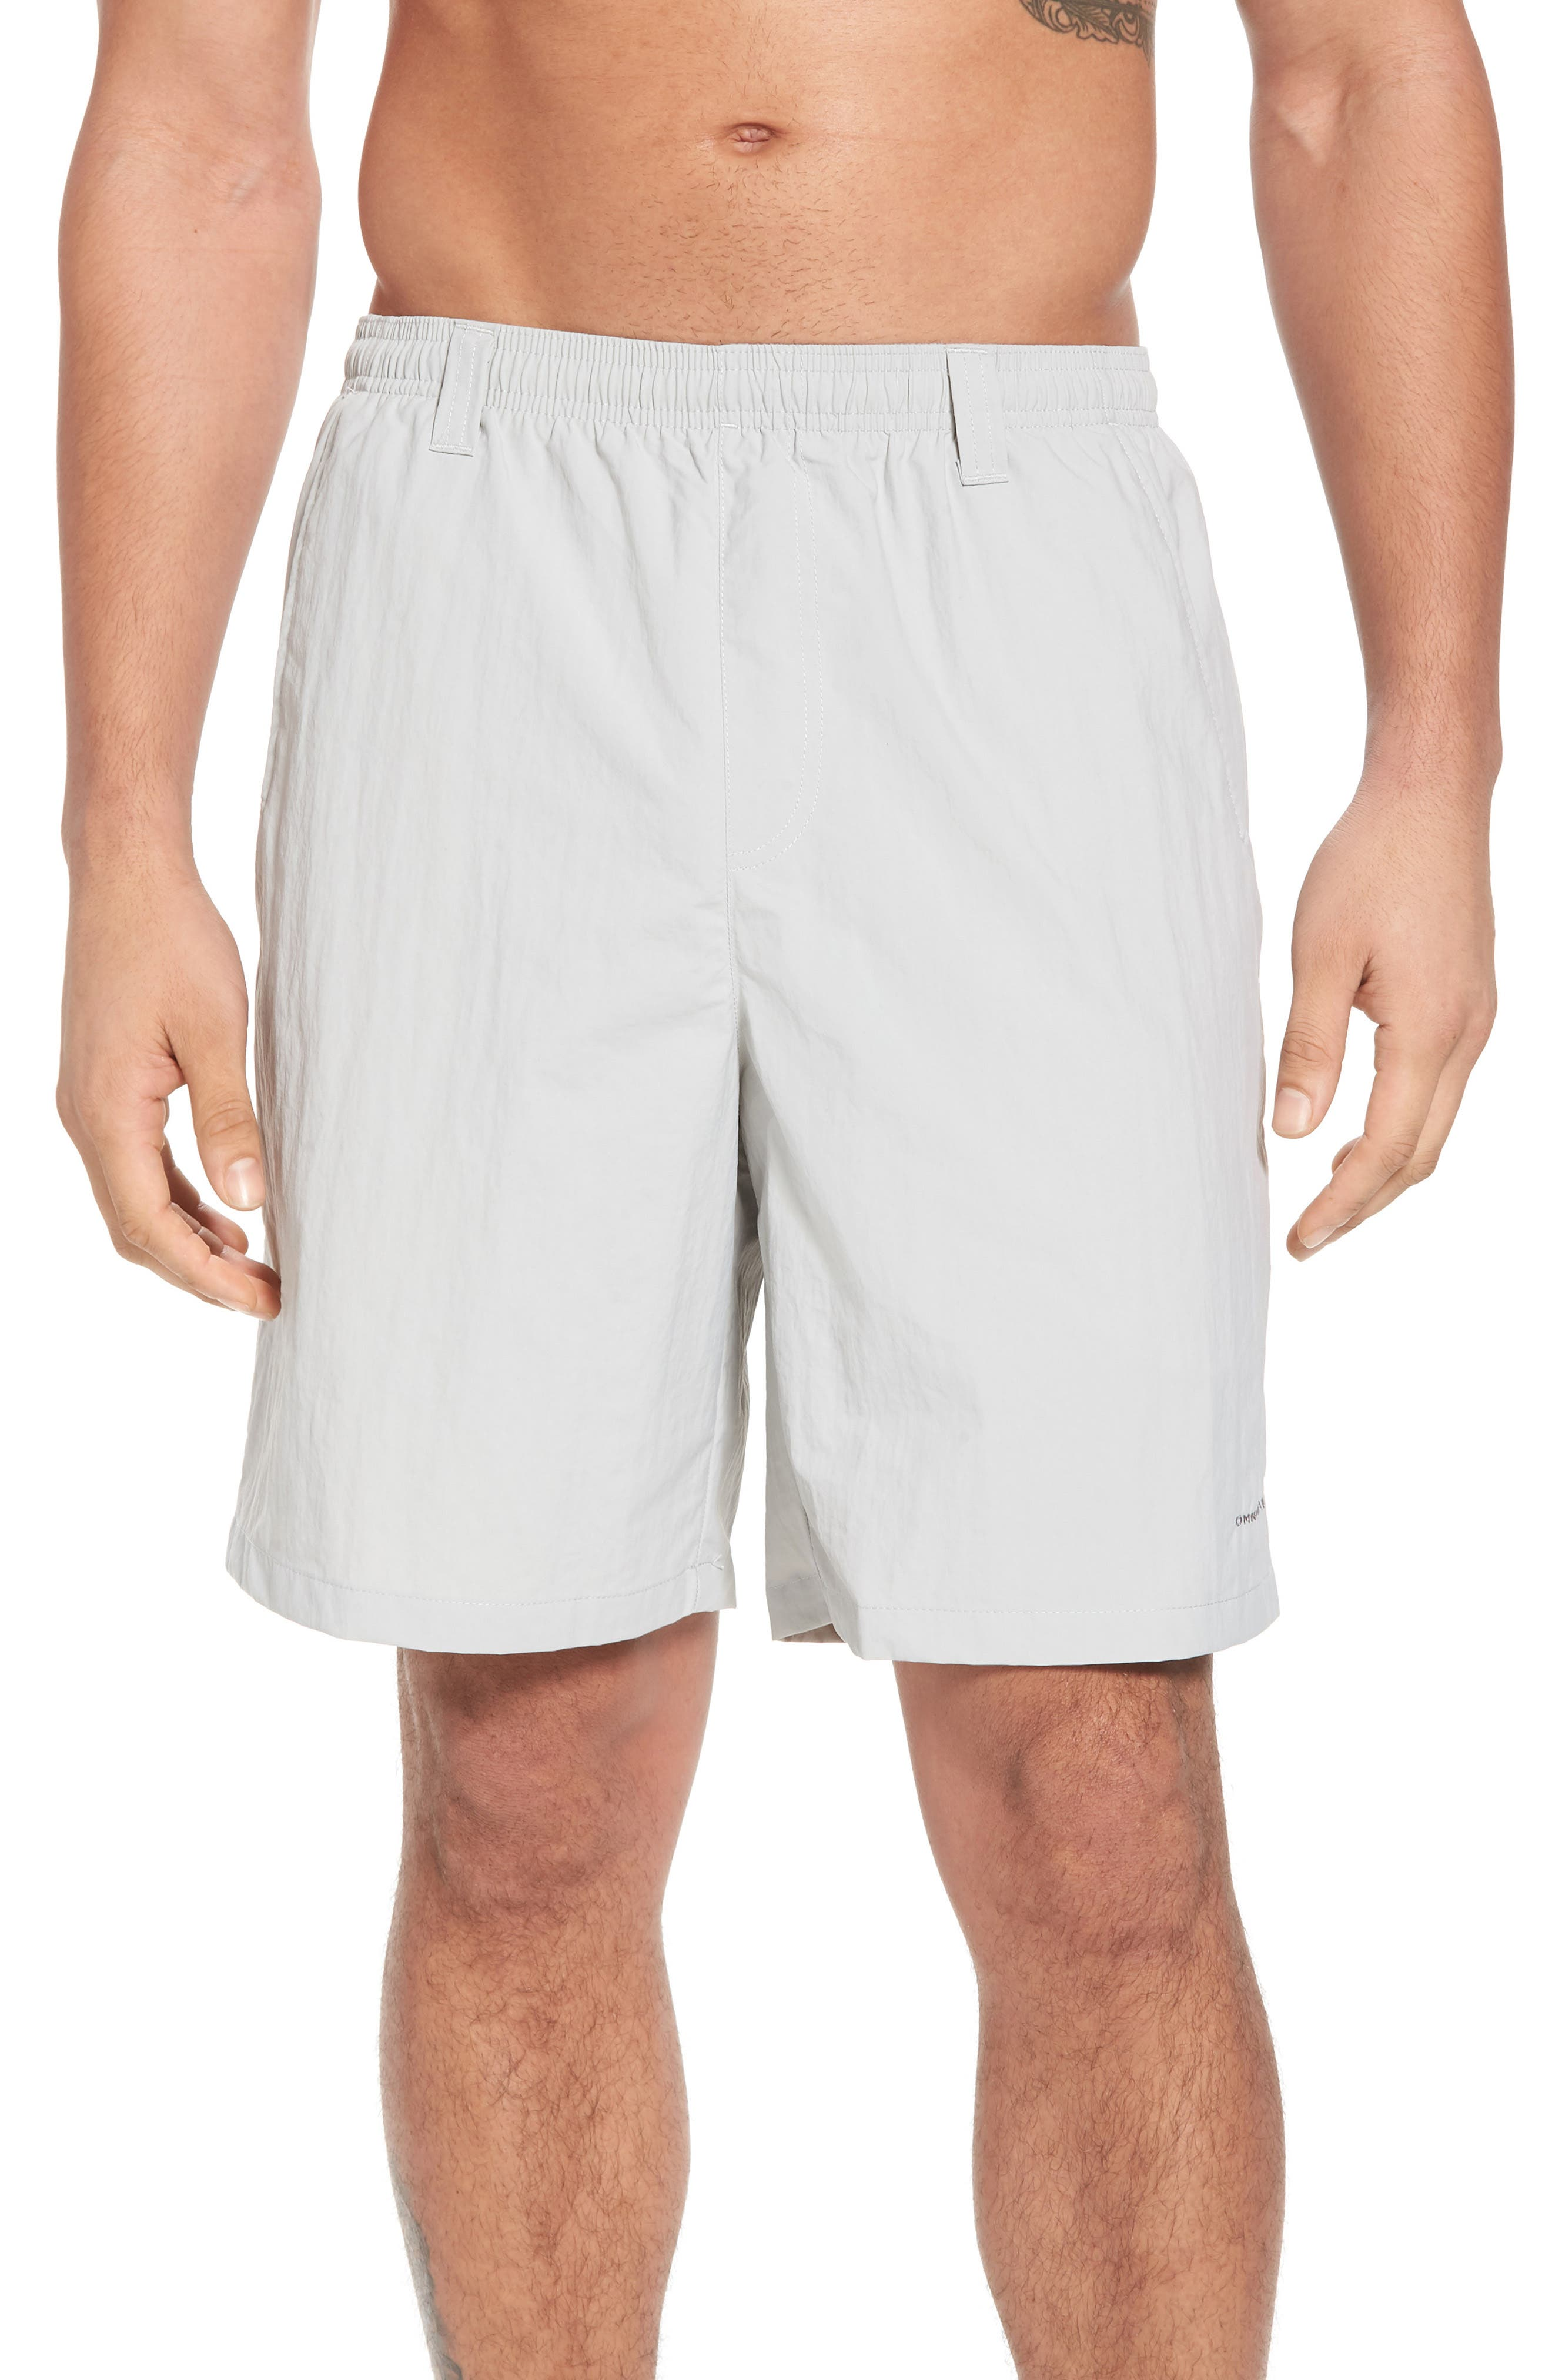 Backcast III Swim Trunks,                             Main thumbnail 1, color,                             COOL GREY